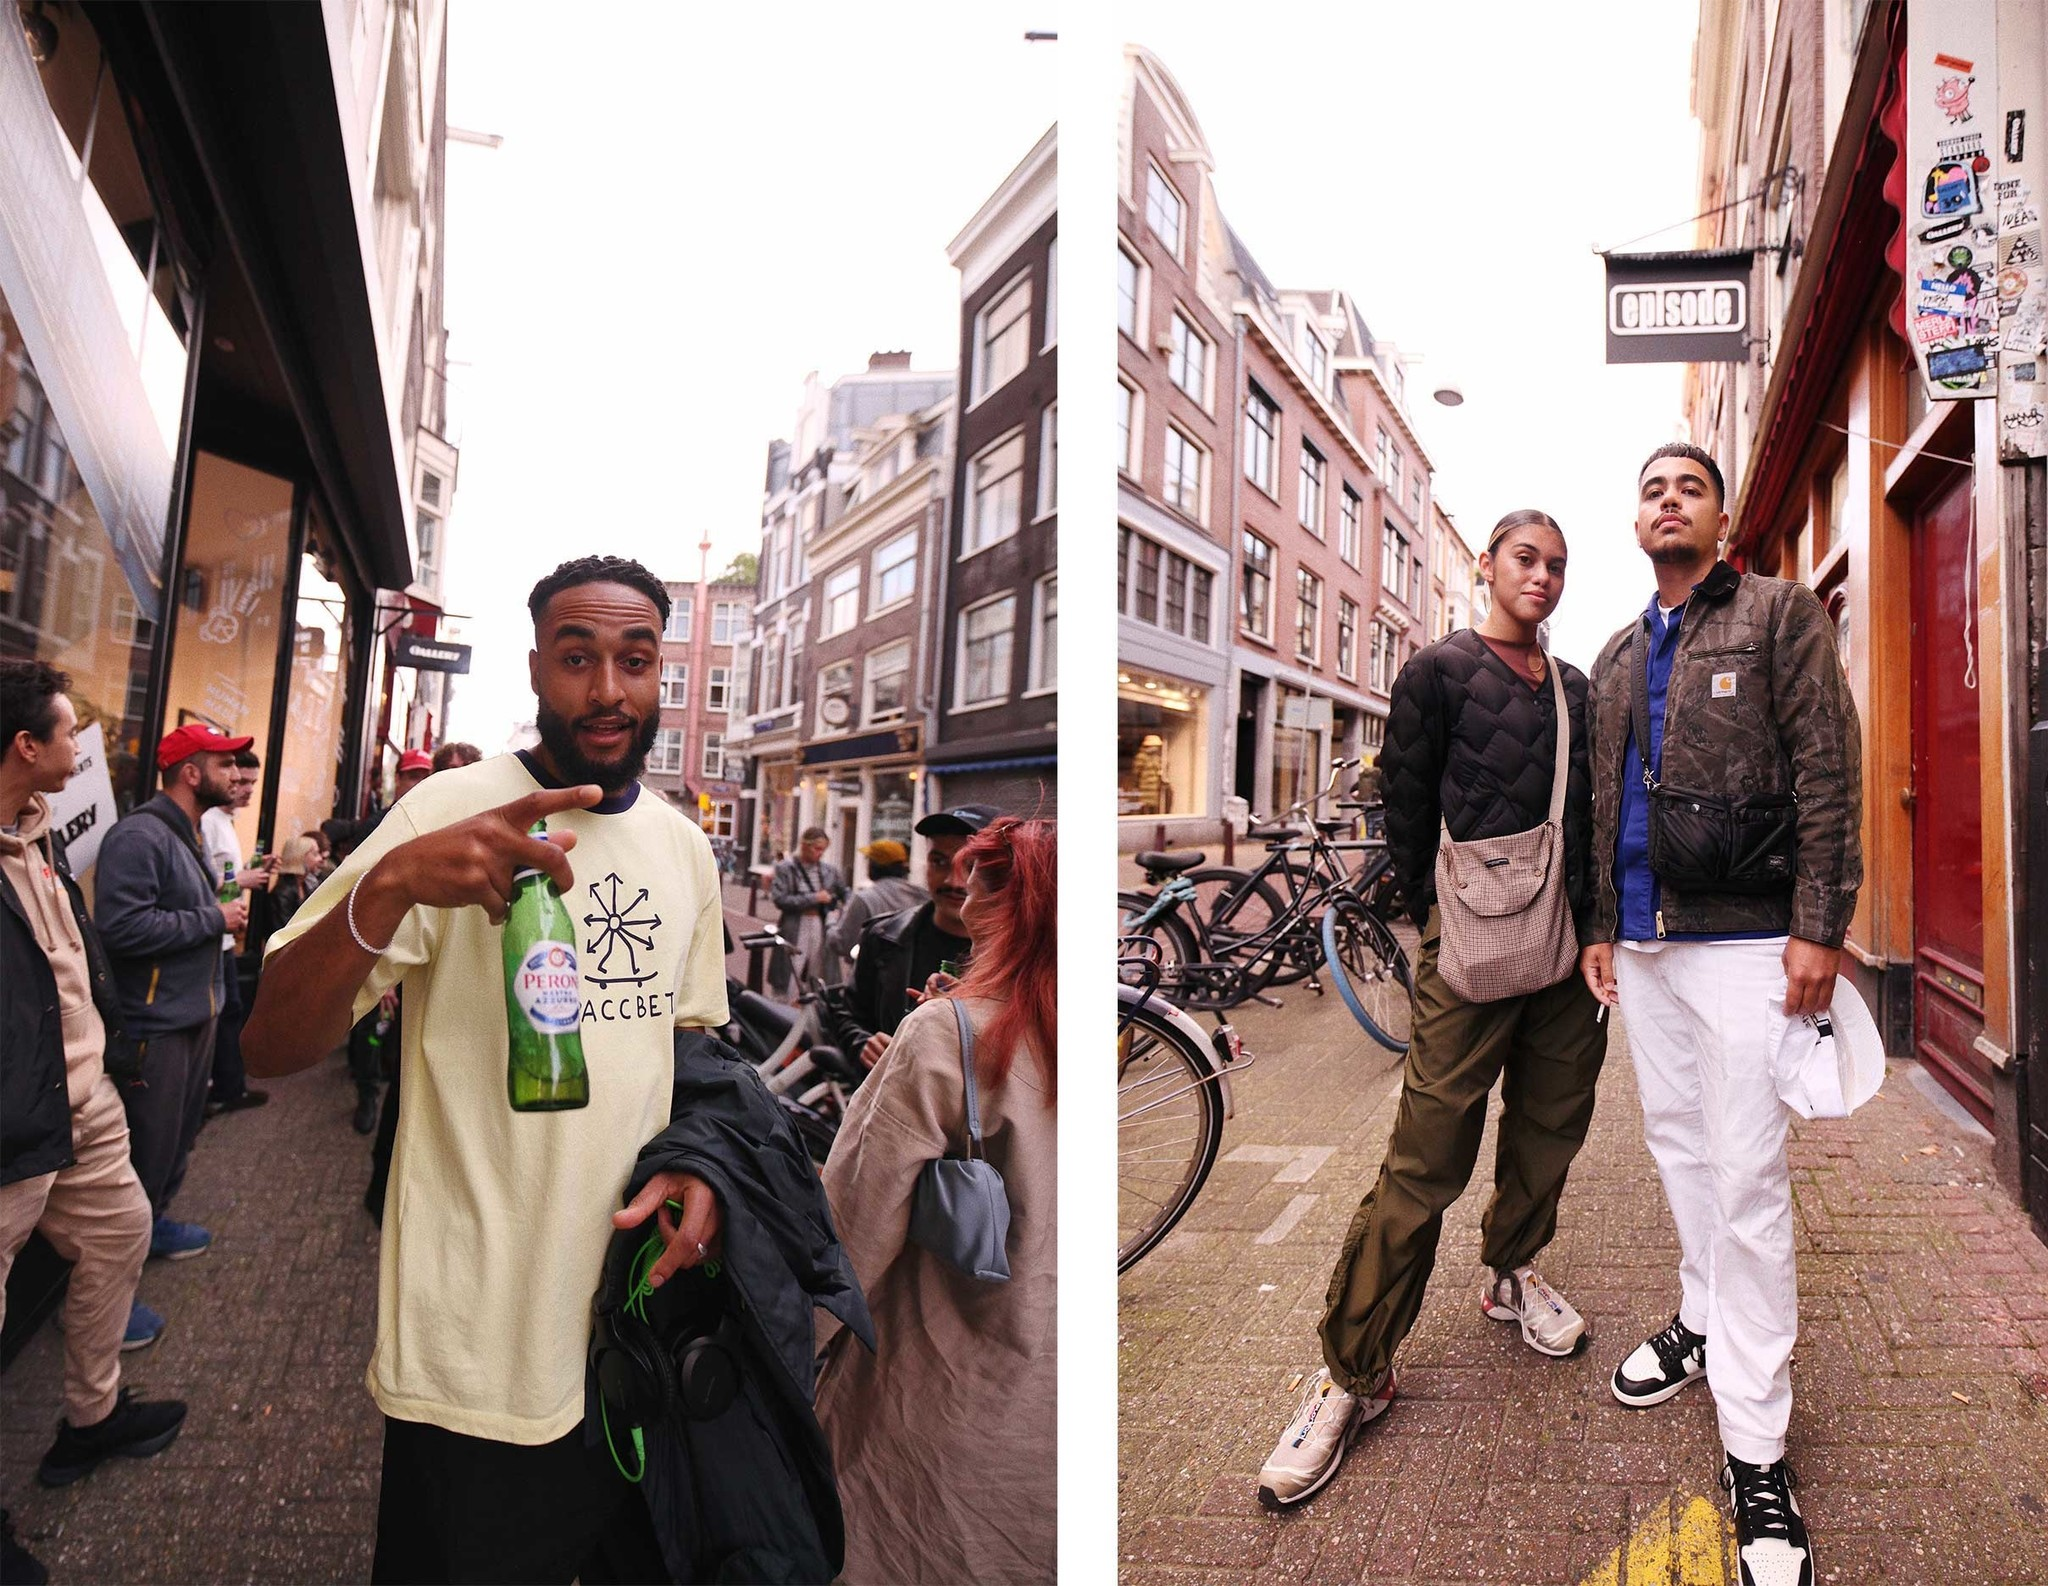 Group of people in front of OALLERY store in Amsterdam